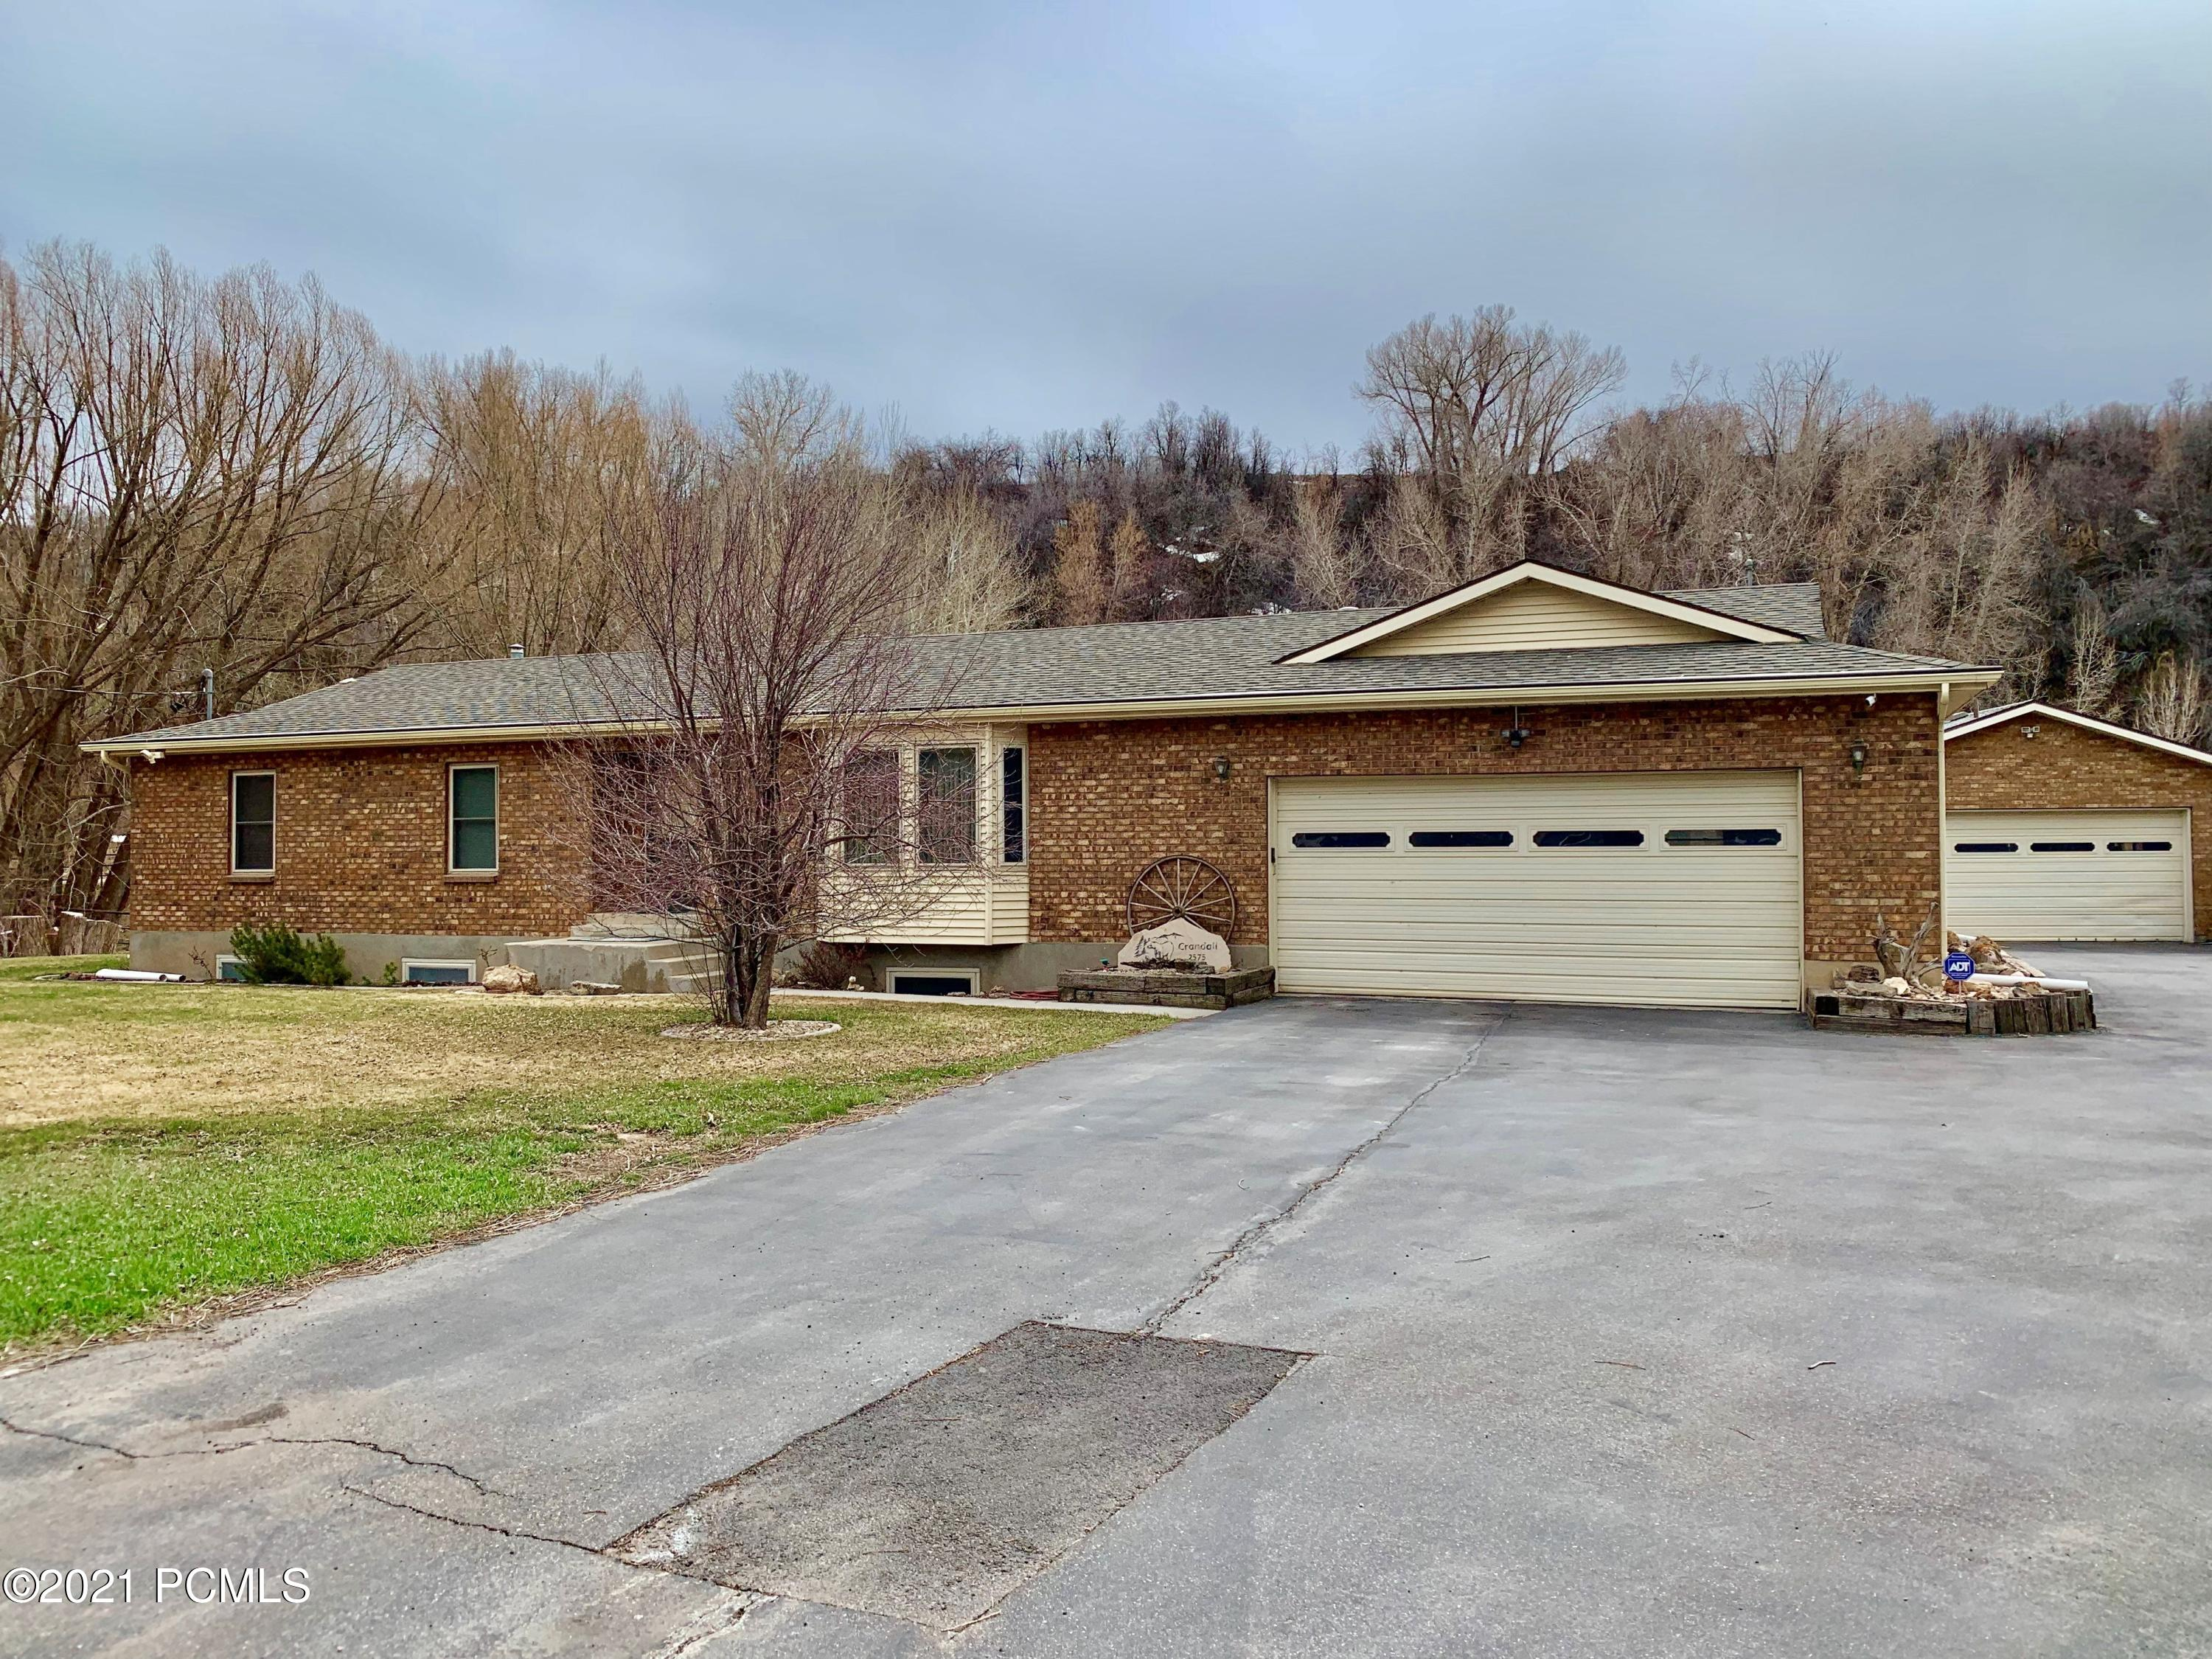 2575 State Rd 32, Peoa, Utah 84061, 4 Bedrooms Bedrooms, ,4 BathroomsBathrooms,Single Family,For Sale,State Rd 32,12101449